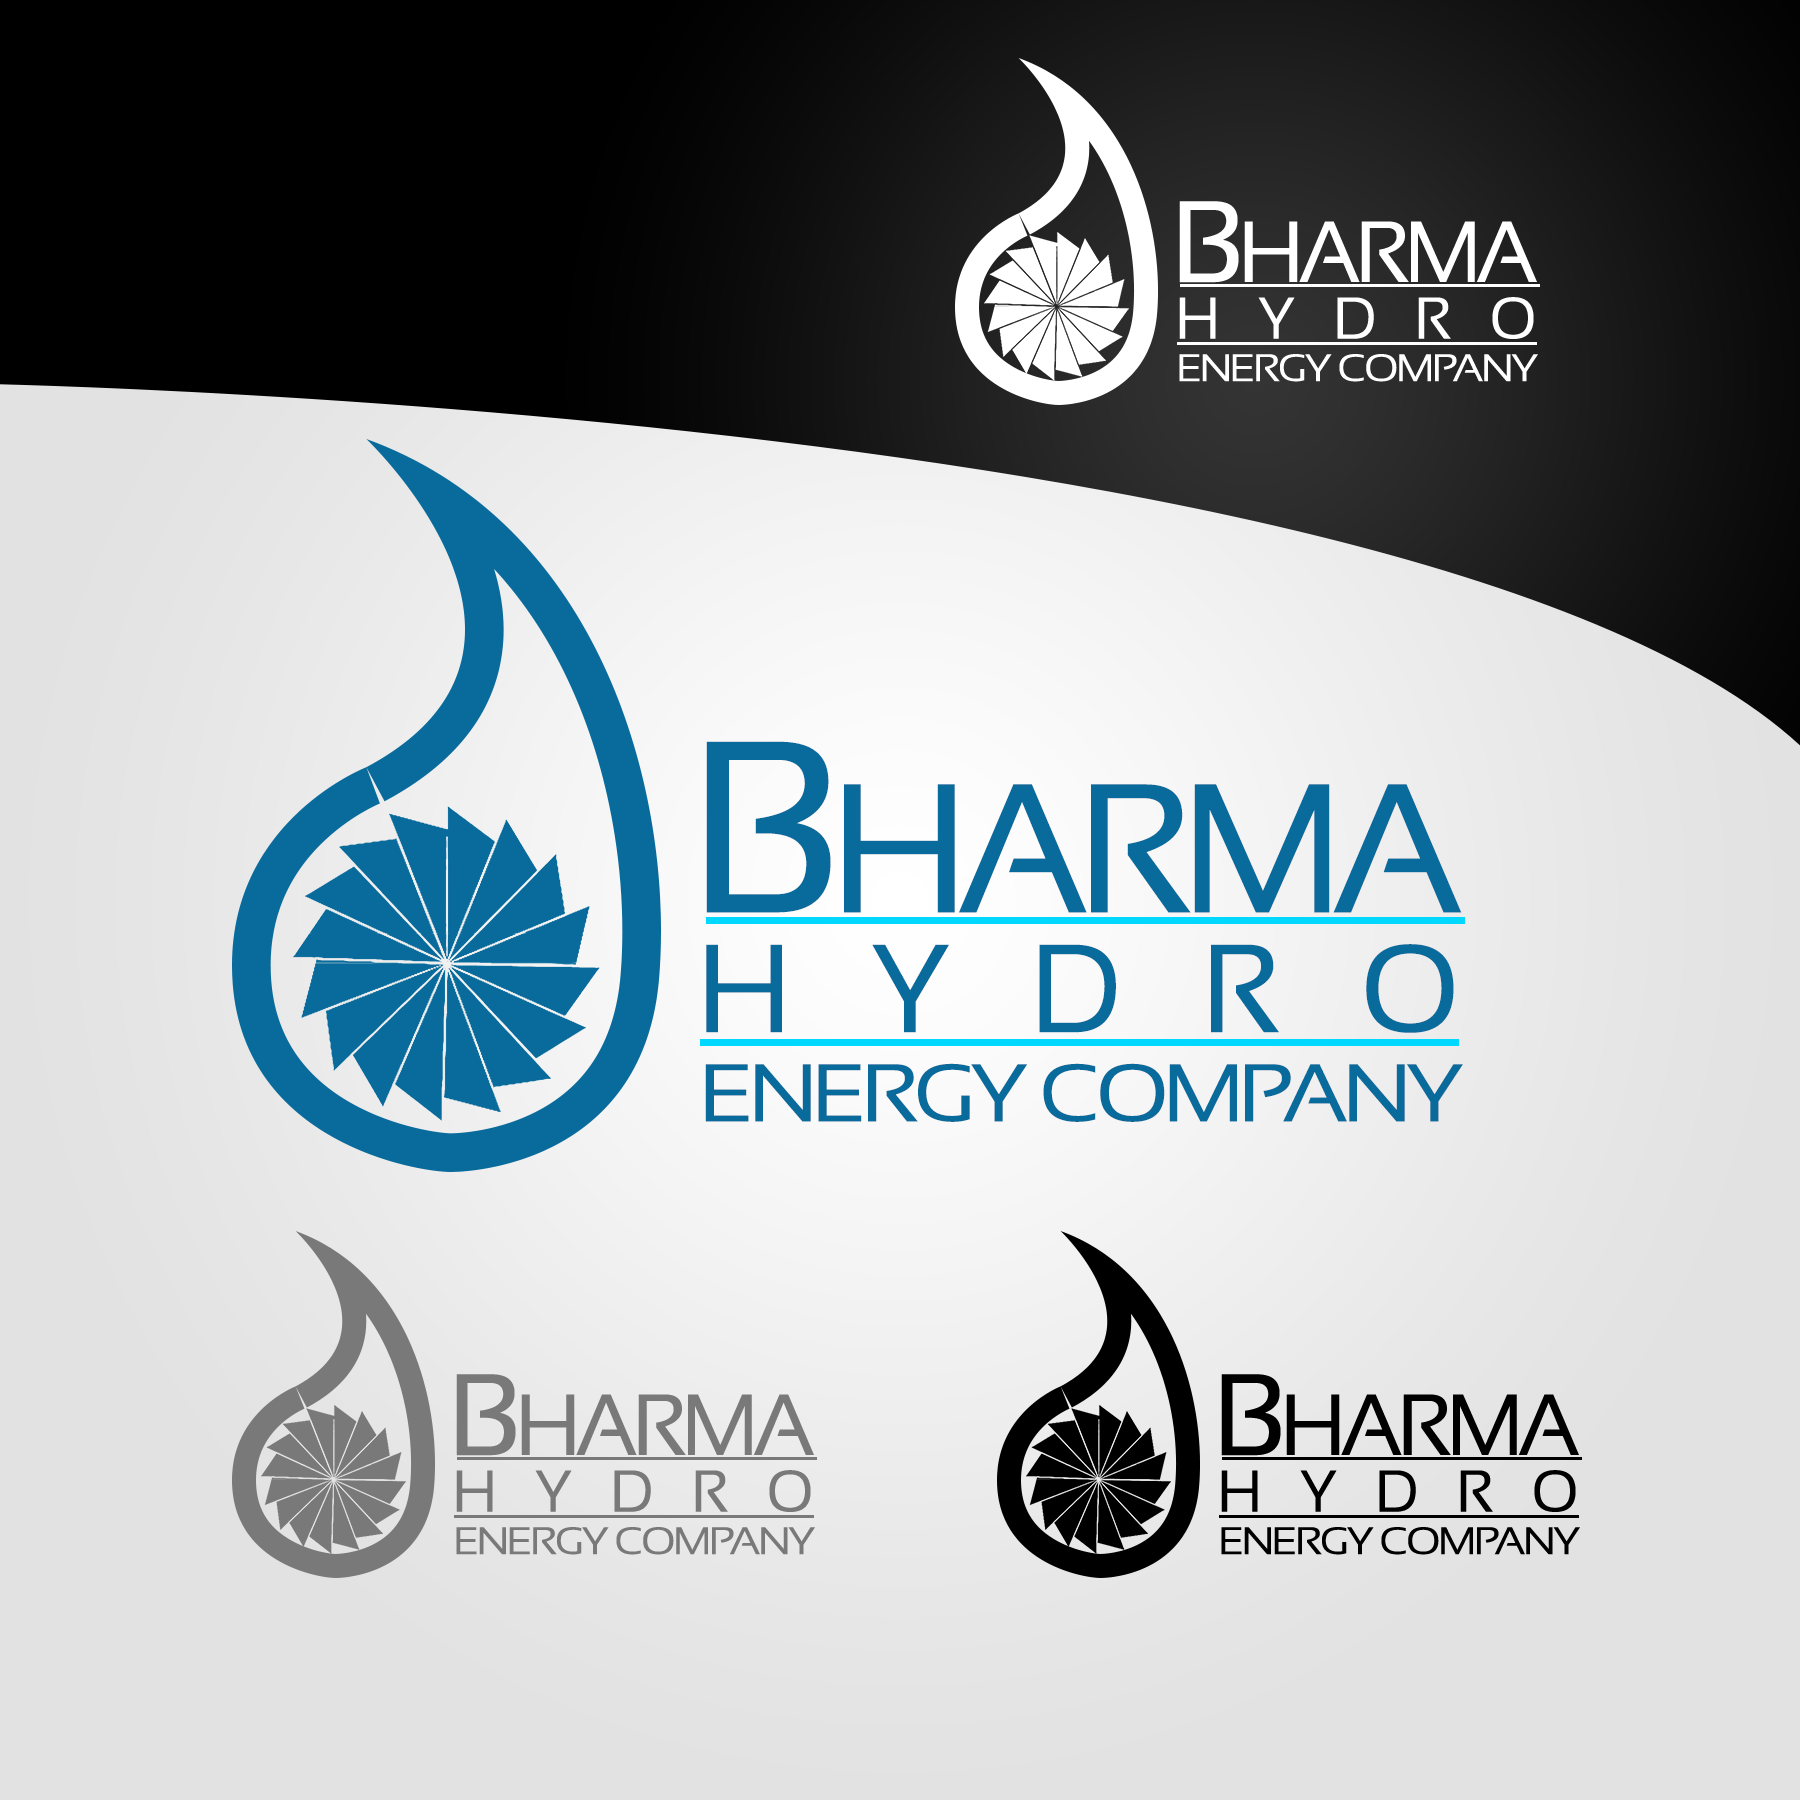 Logo Design by Lemuel Arvin Tanzo - Entry No. 20 in the Logo Design Contest Creative Logo Design for Bharma Hydro.